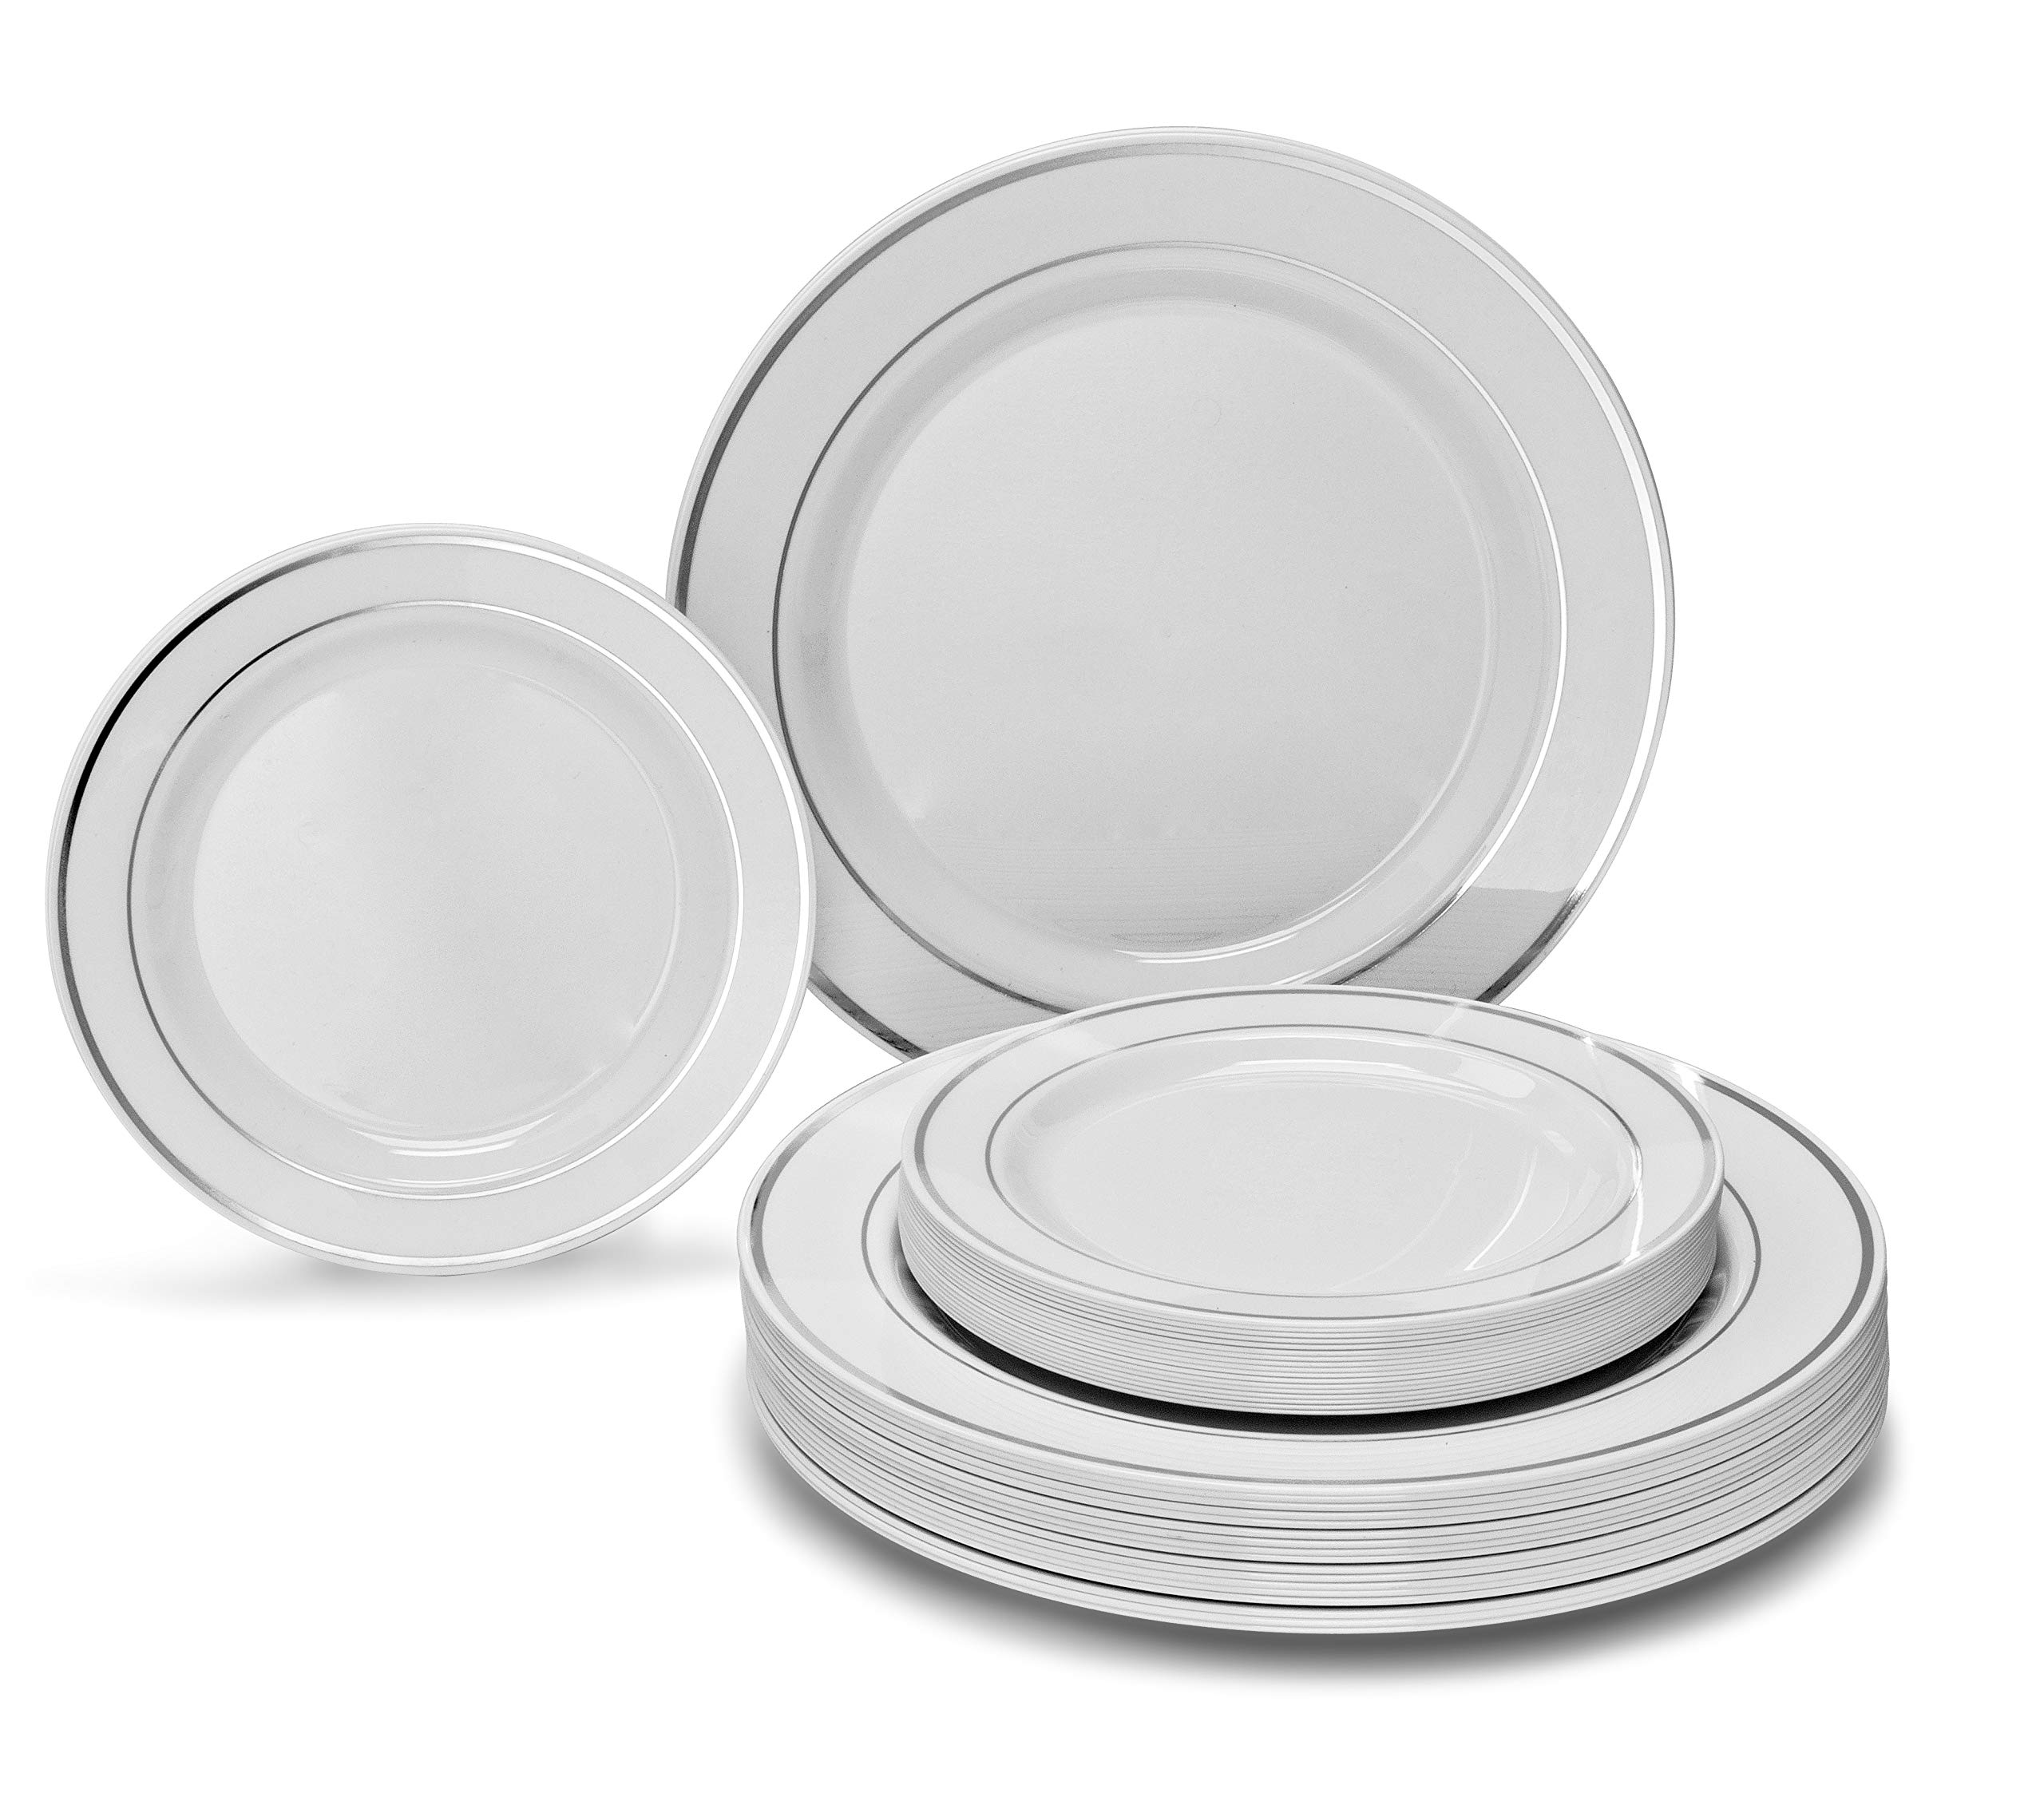 '' OCCASIONS'' 120 Plates Pack, (60 Guests) Heavyweight Premium Wedding Party Disposable Plastic Plates Set - 60 x 10.5'' Dinner + 60 x 7.5'' Salad/Dessert (White w/Silver Rim)